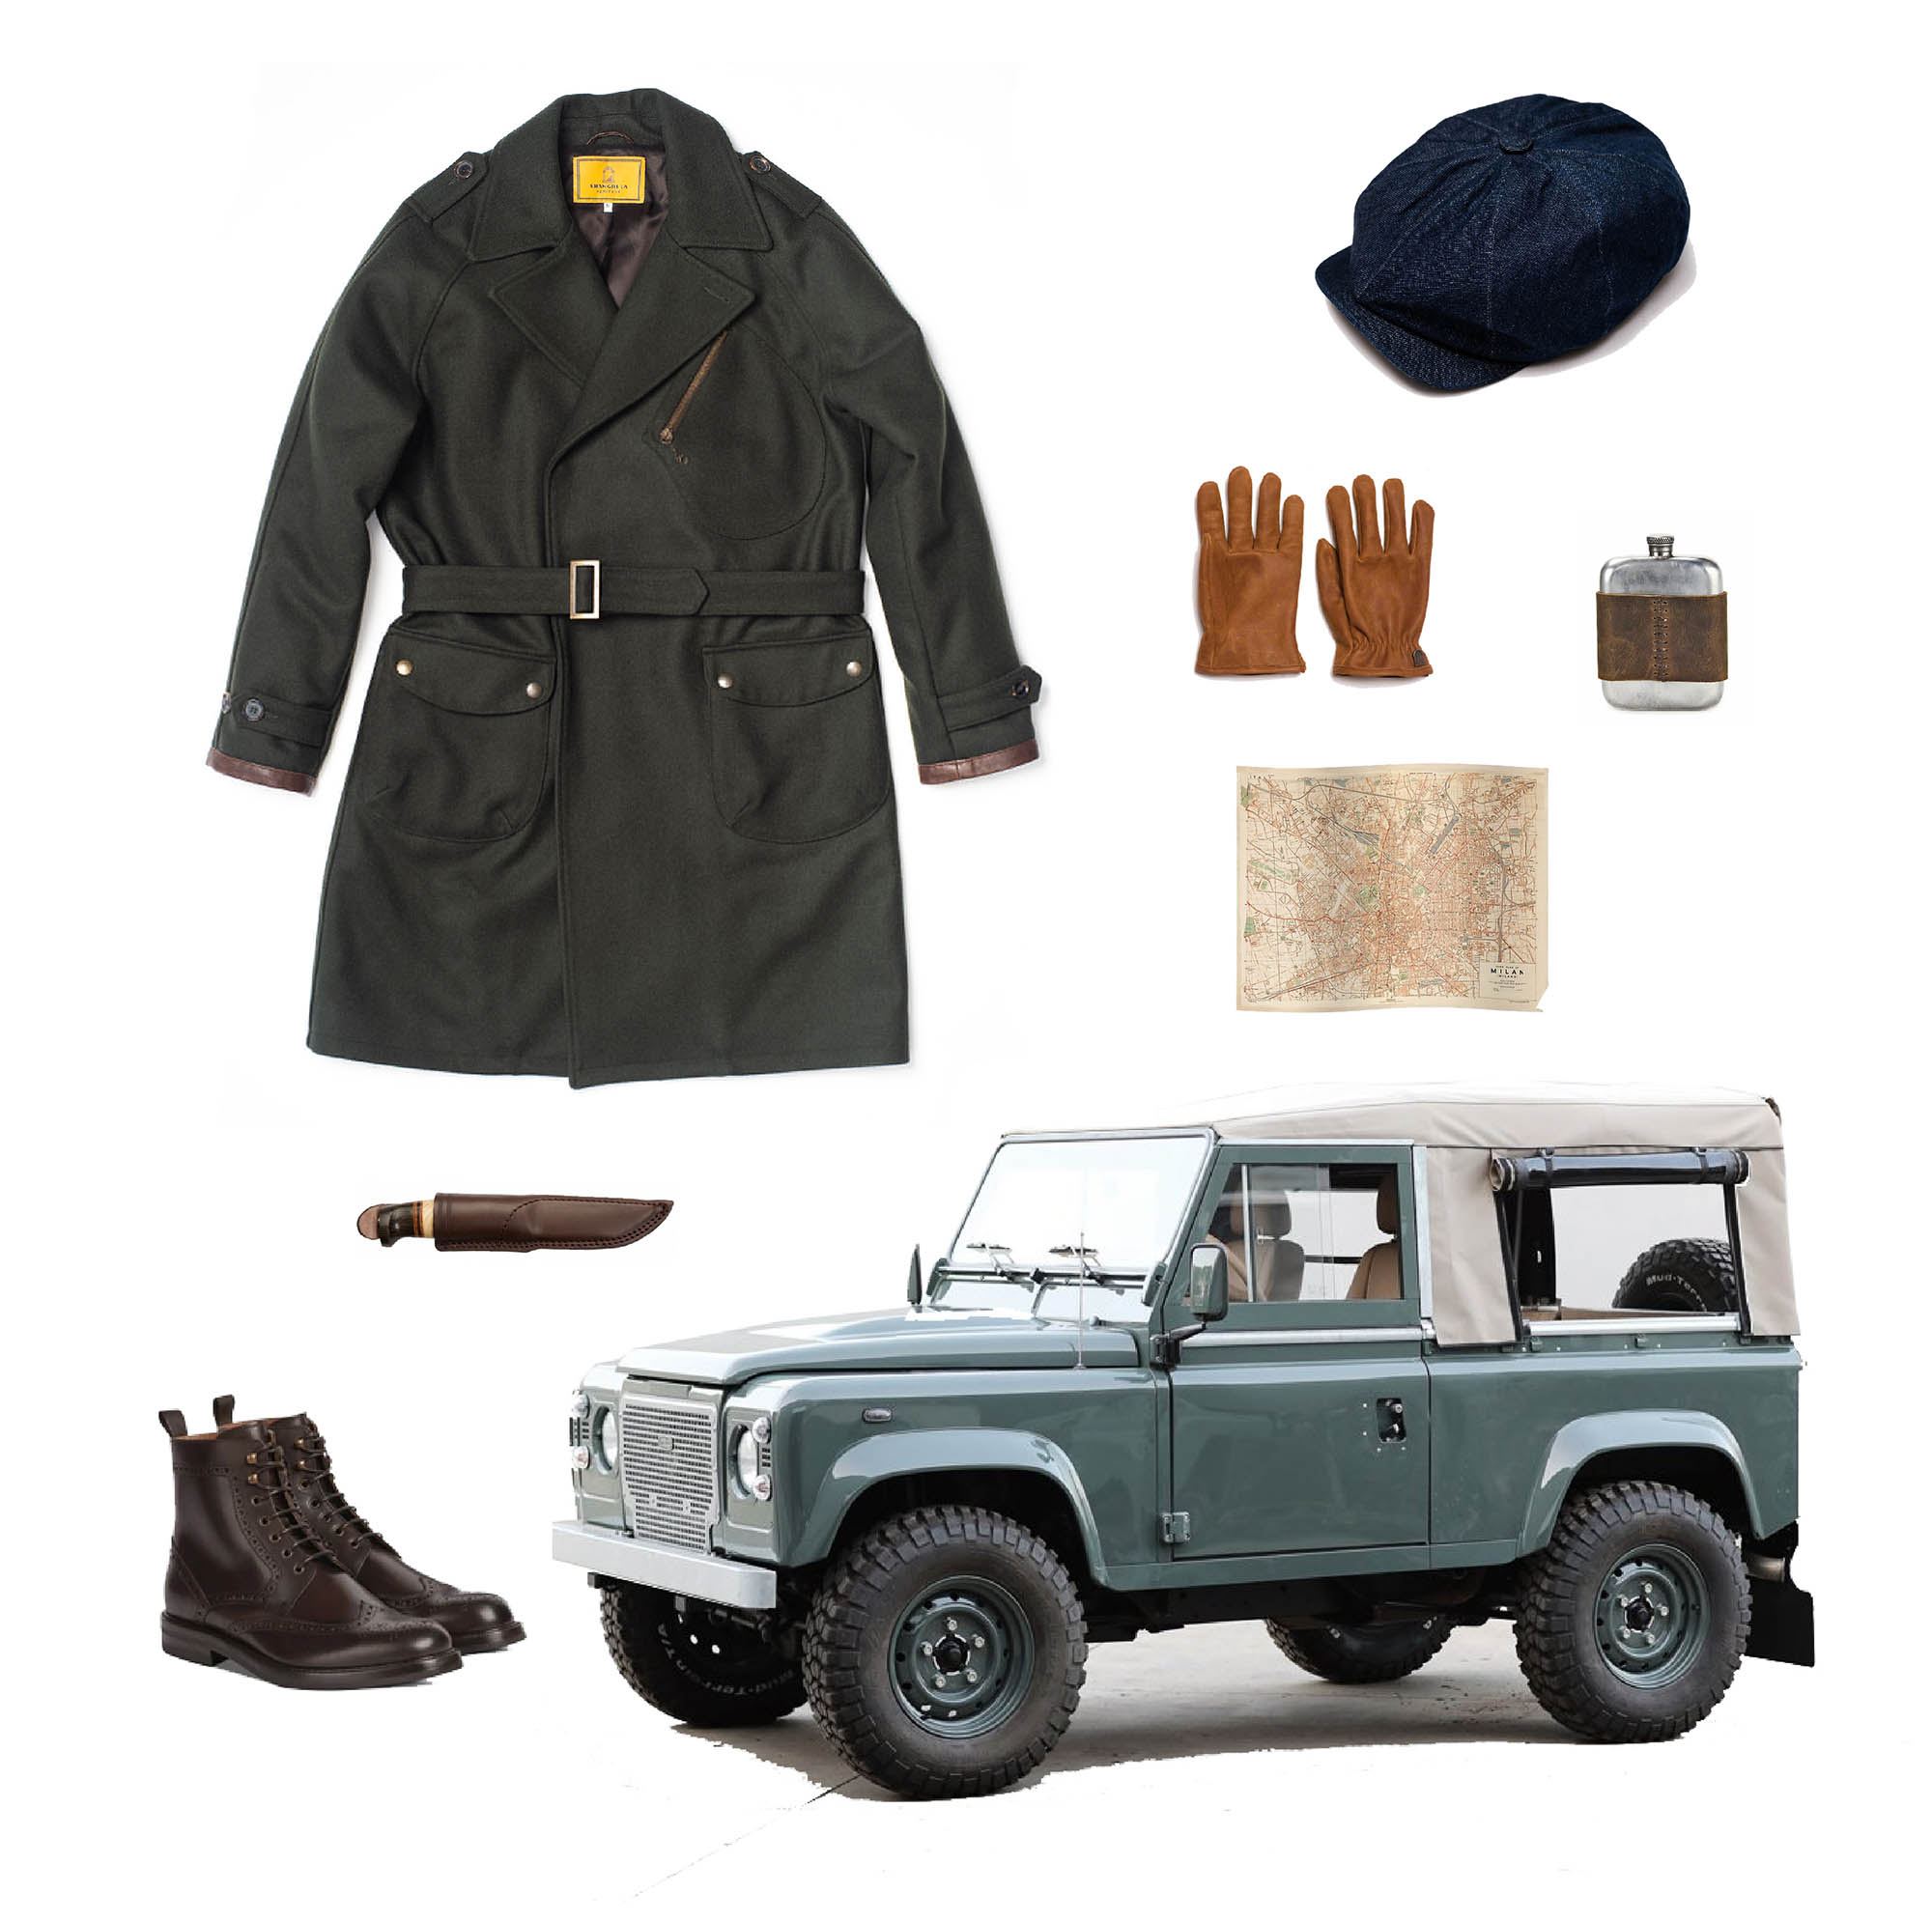 shangri-la-heritage-winter-kit-stelvio-forest-green-melton-wool-dispatch-riders-coat